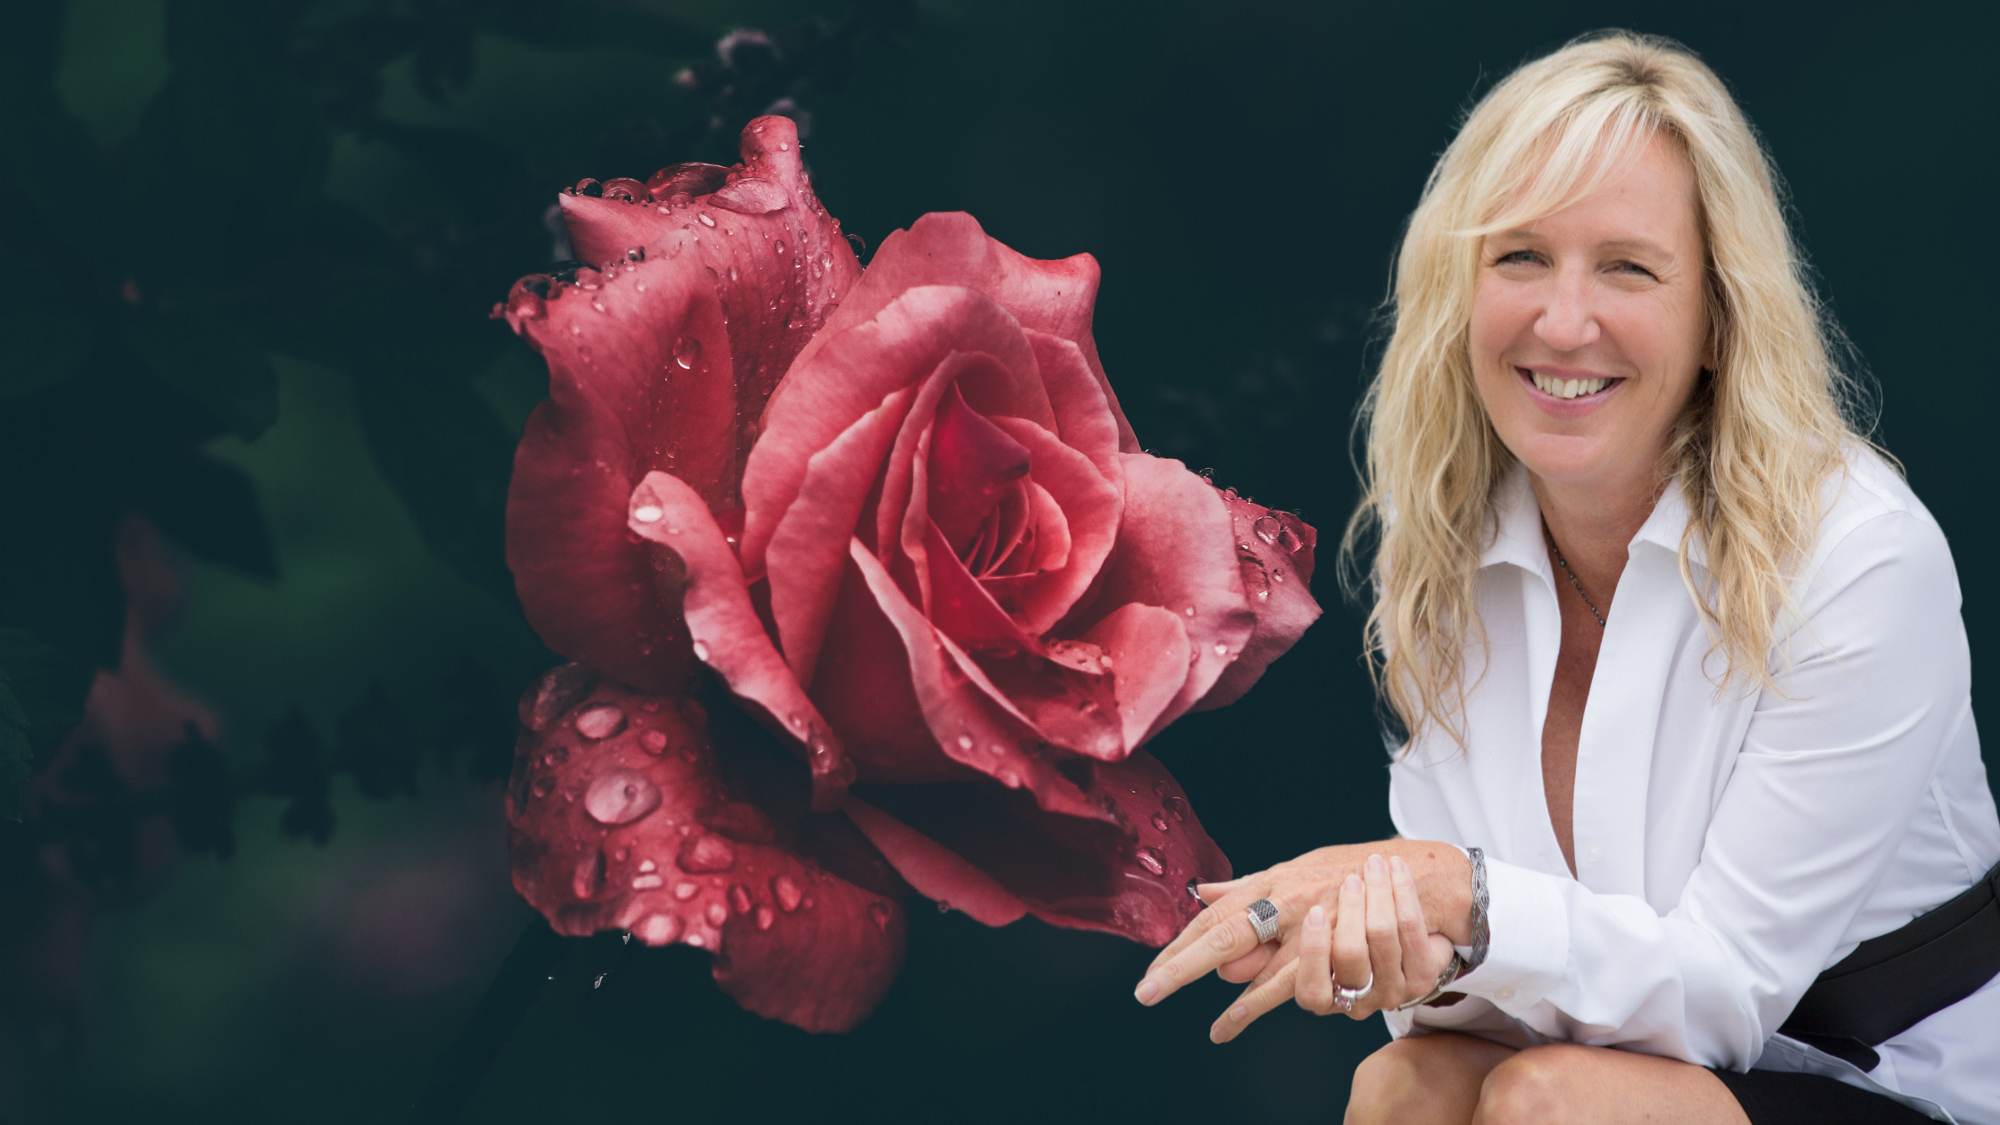 A black background with a single pink rose blooming with a photo of Liz Porter in a white blouse sitting next to it.